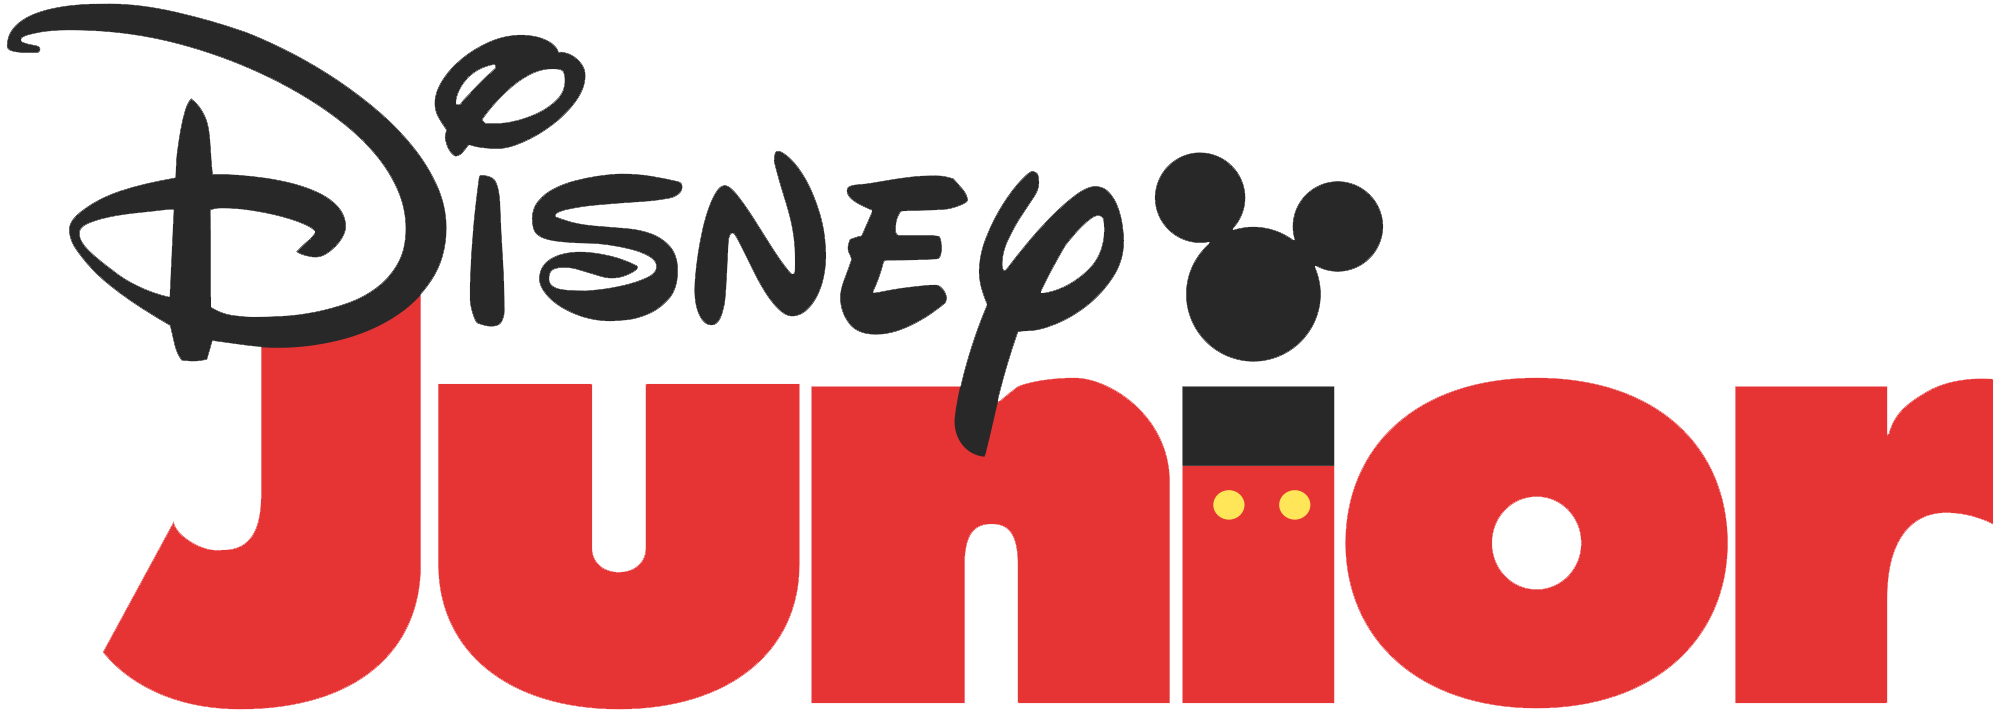 Disney junior logo png. Image philippines russel wiki